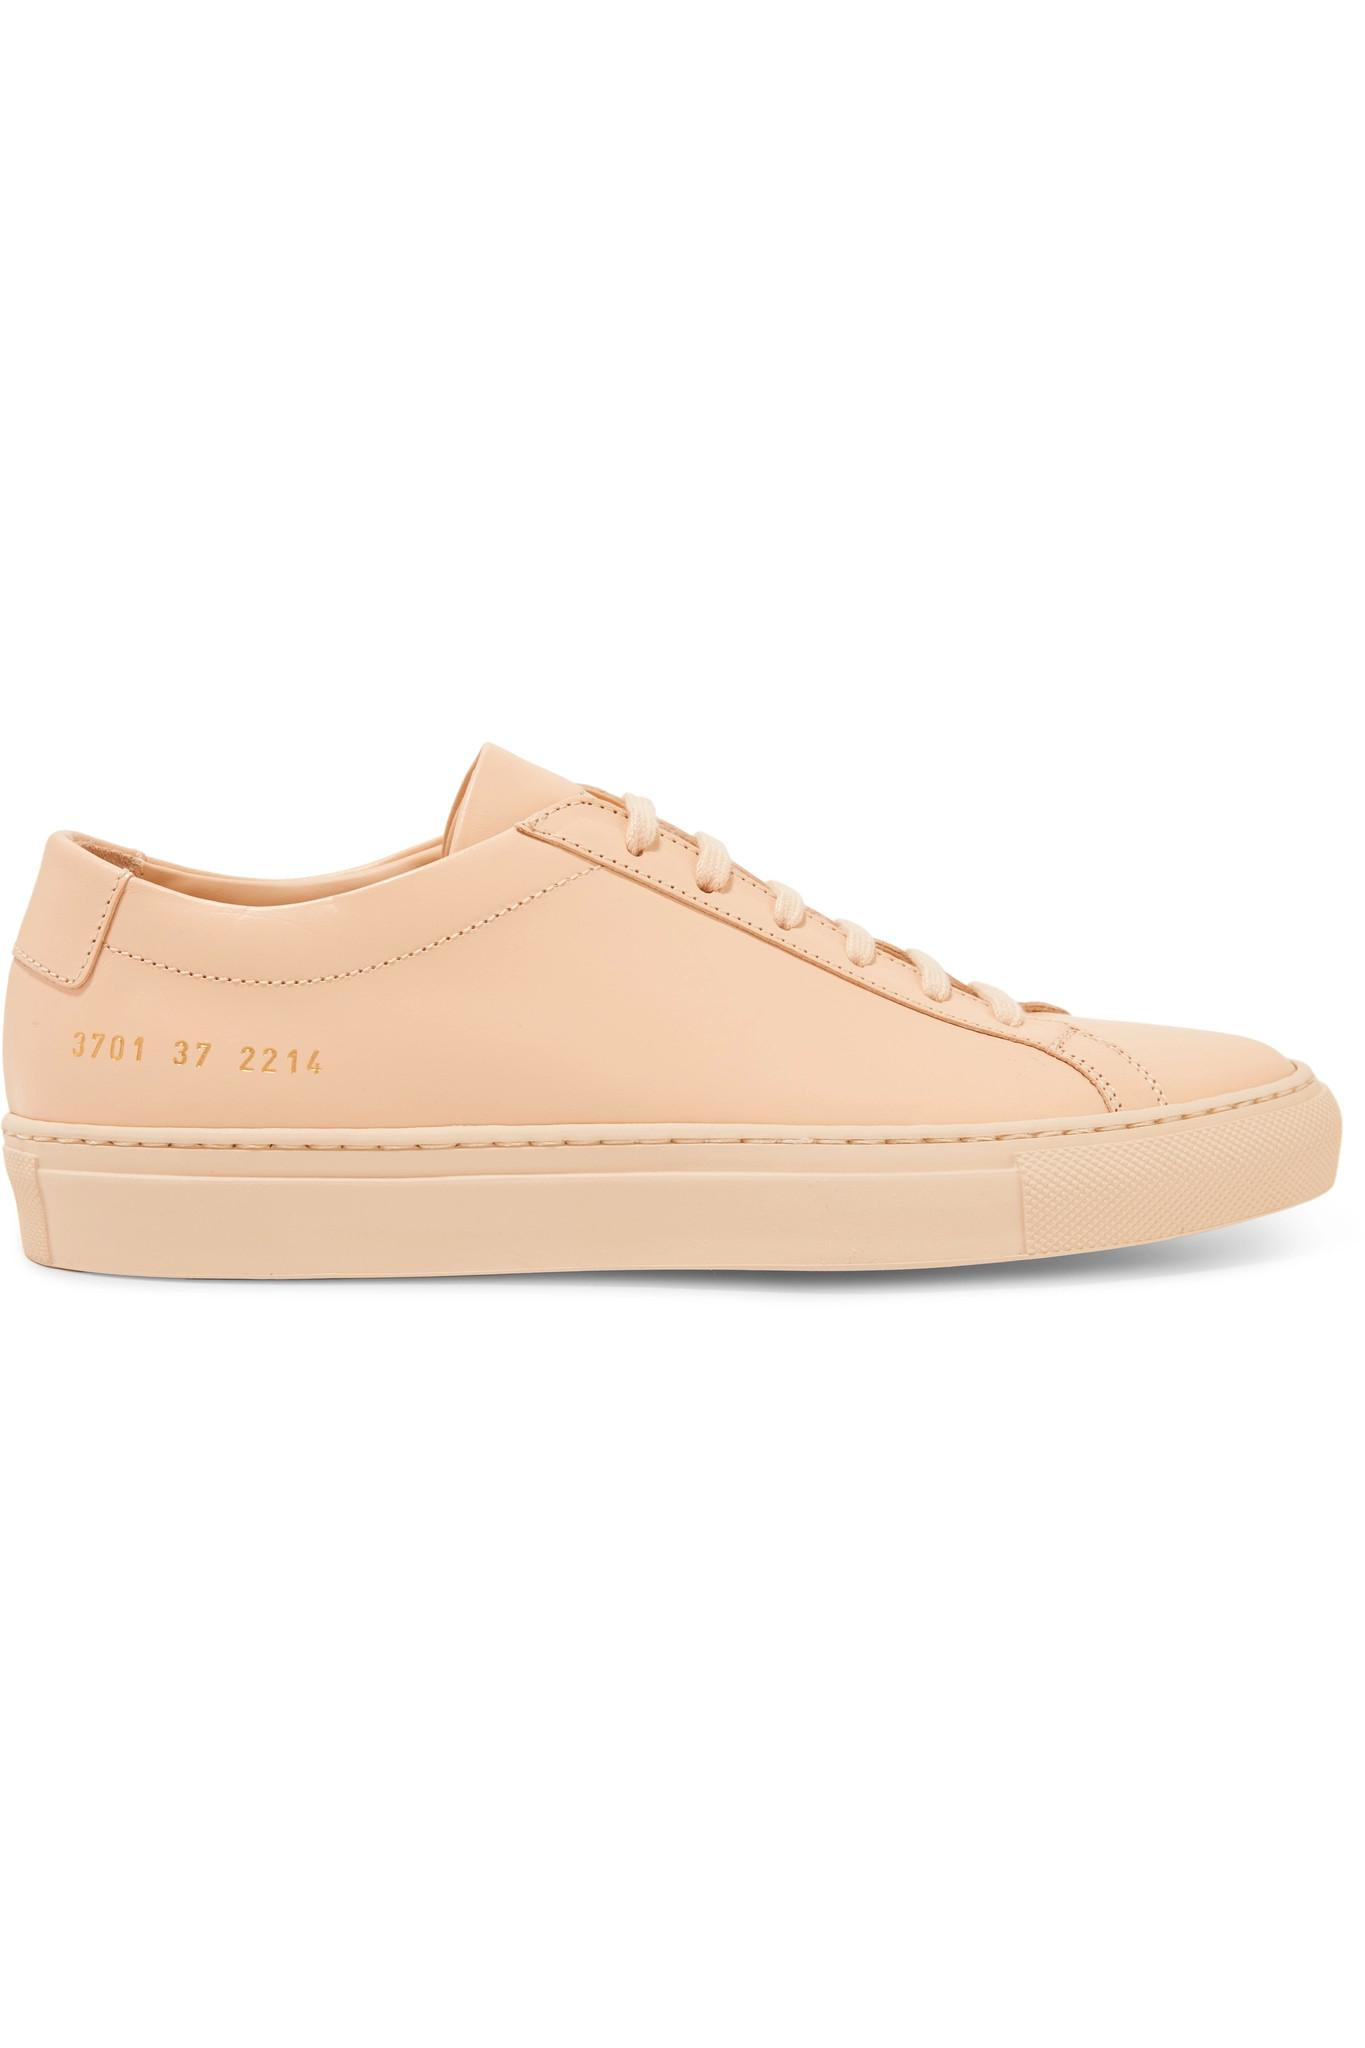 Le Meilleur Common Projects Original Achilles Leather Sneakers In Ce Mois Ci